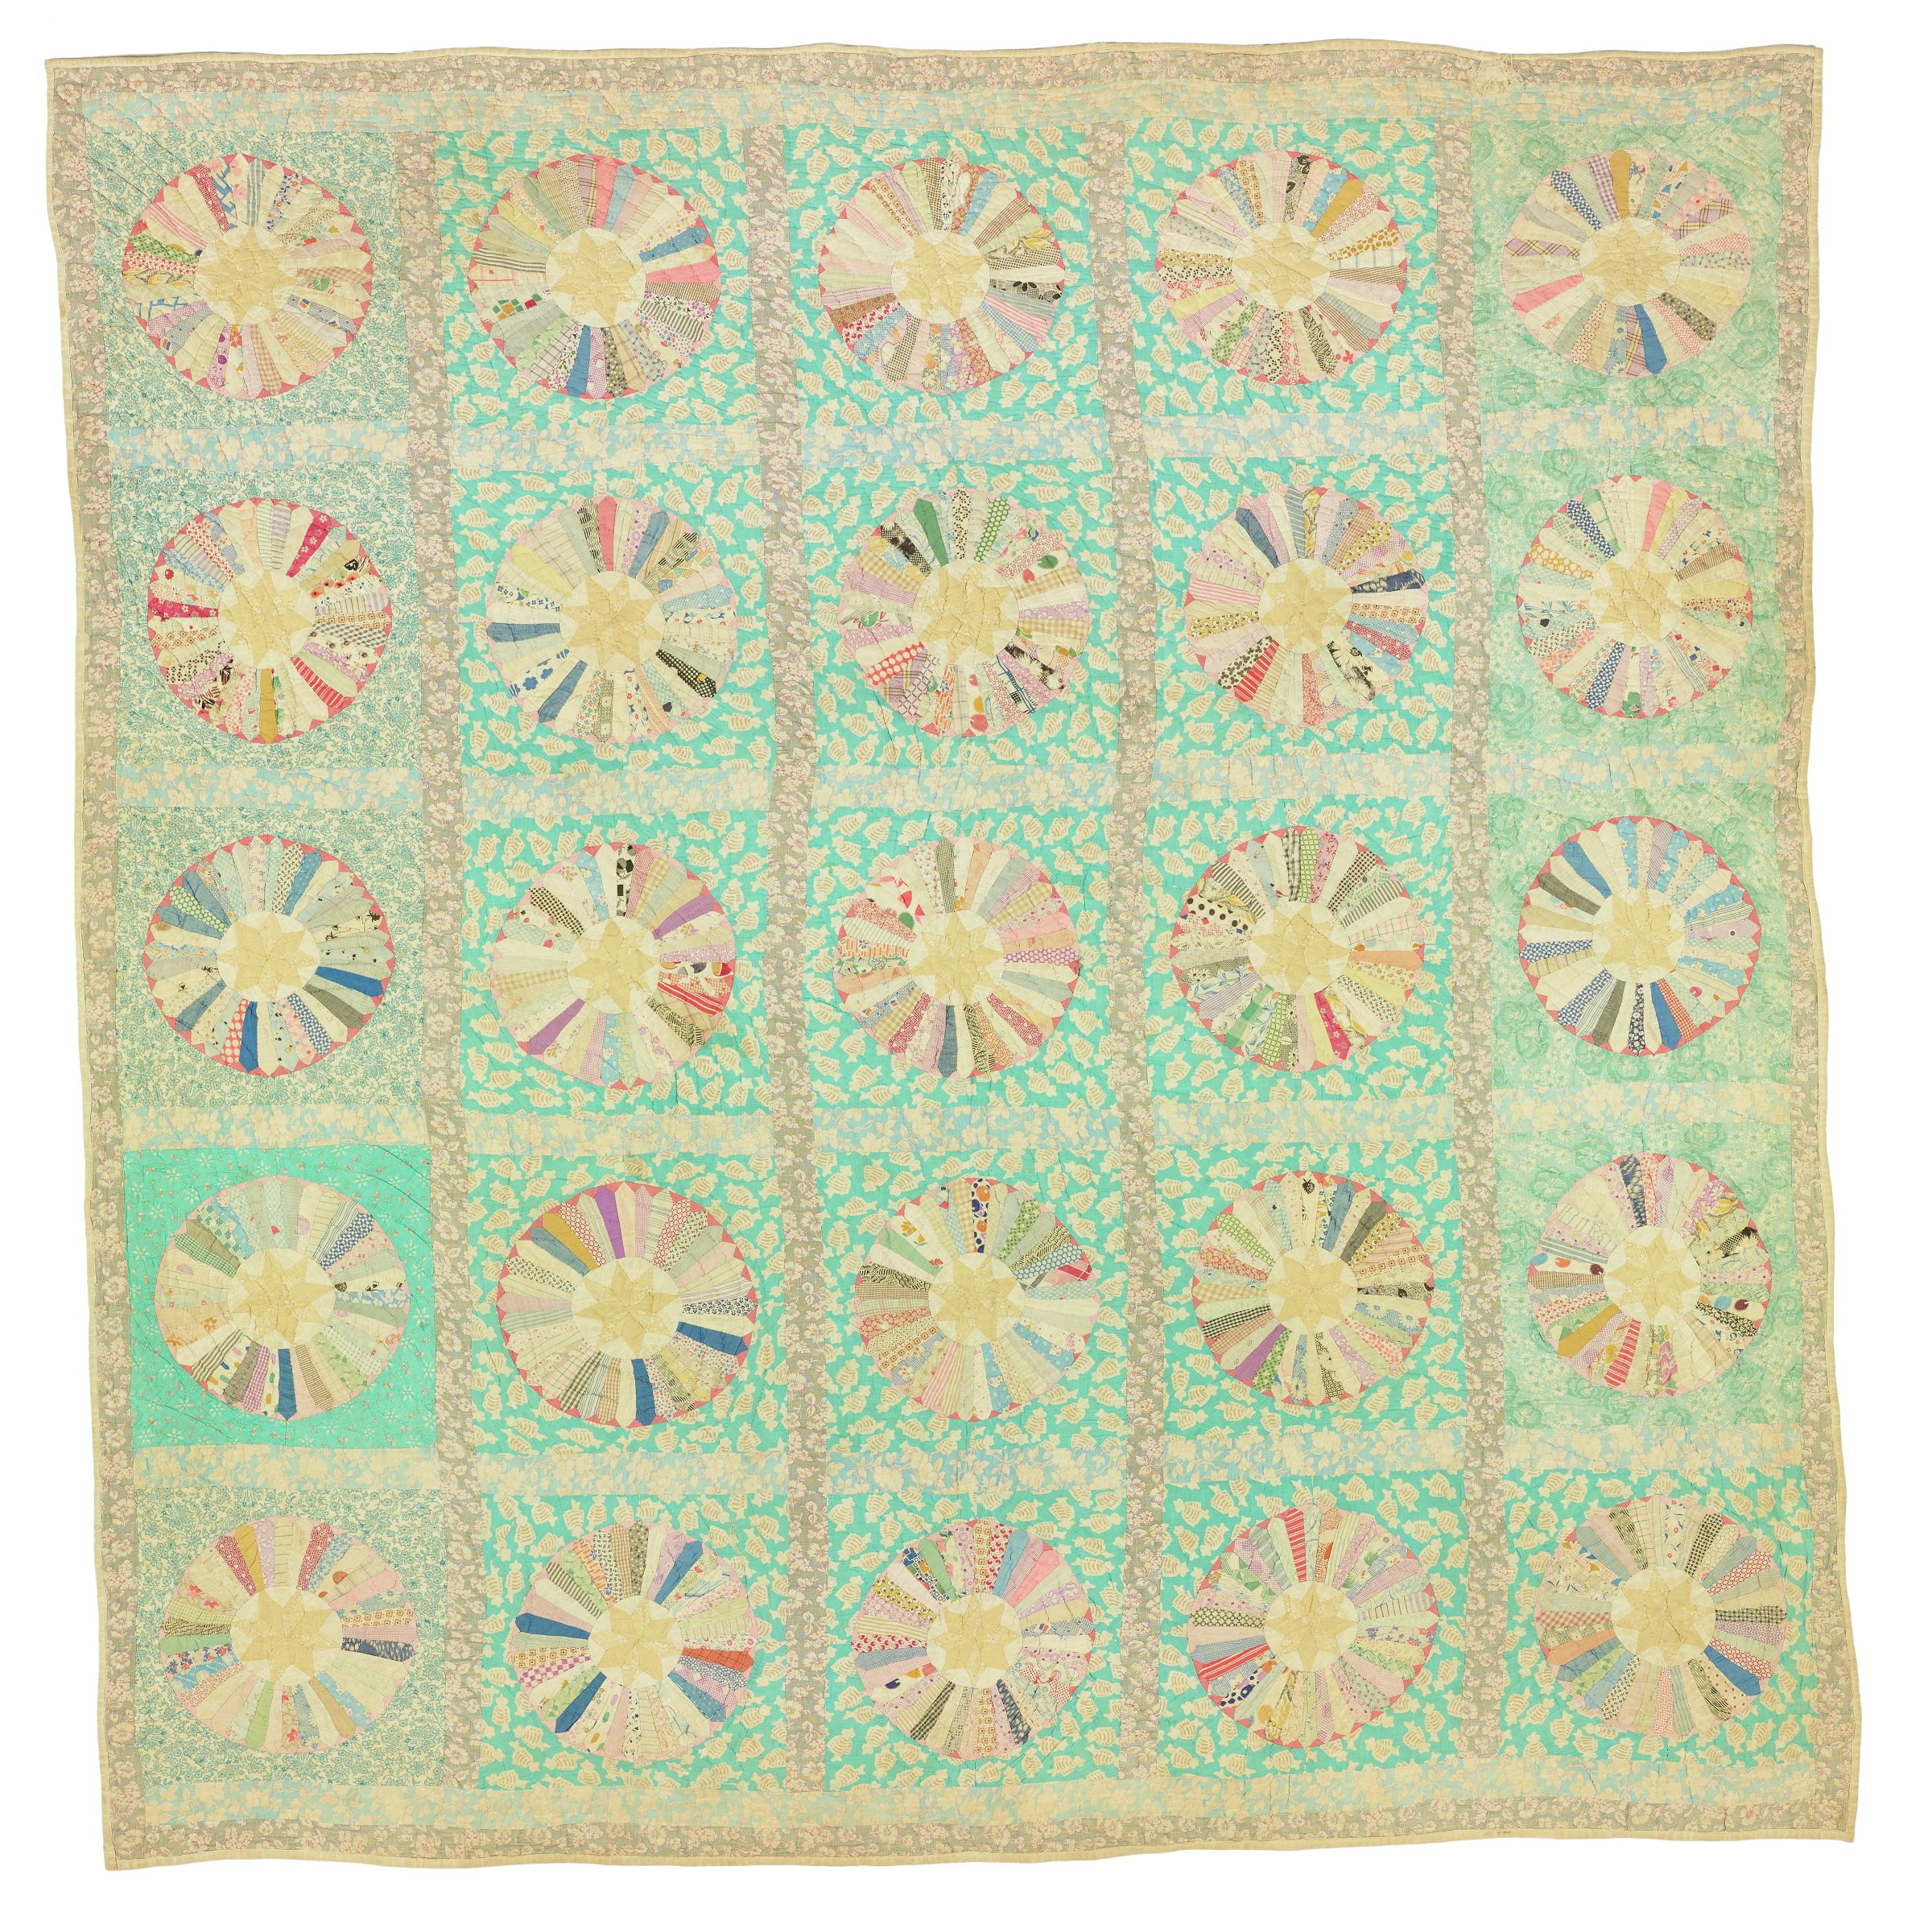 Large, square quilt made of cotton feed sacks in the form of a grid of 25 blocks, the ground fabric of each block in shades of green, the central blocks with the image of candy in wrappers, the two outer rows of green floral prints, the fourth block down in the far left outer row of a darker green-ground fabric, in the center of each block is a colorful wheel comprised of a series of radiating arms or rays stemming from a central medallion with a small yellow star in the middle, the grid and border defined by a floral fabric in a different beige-green shade.